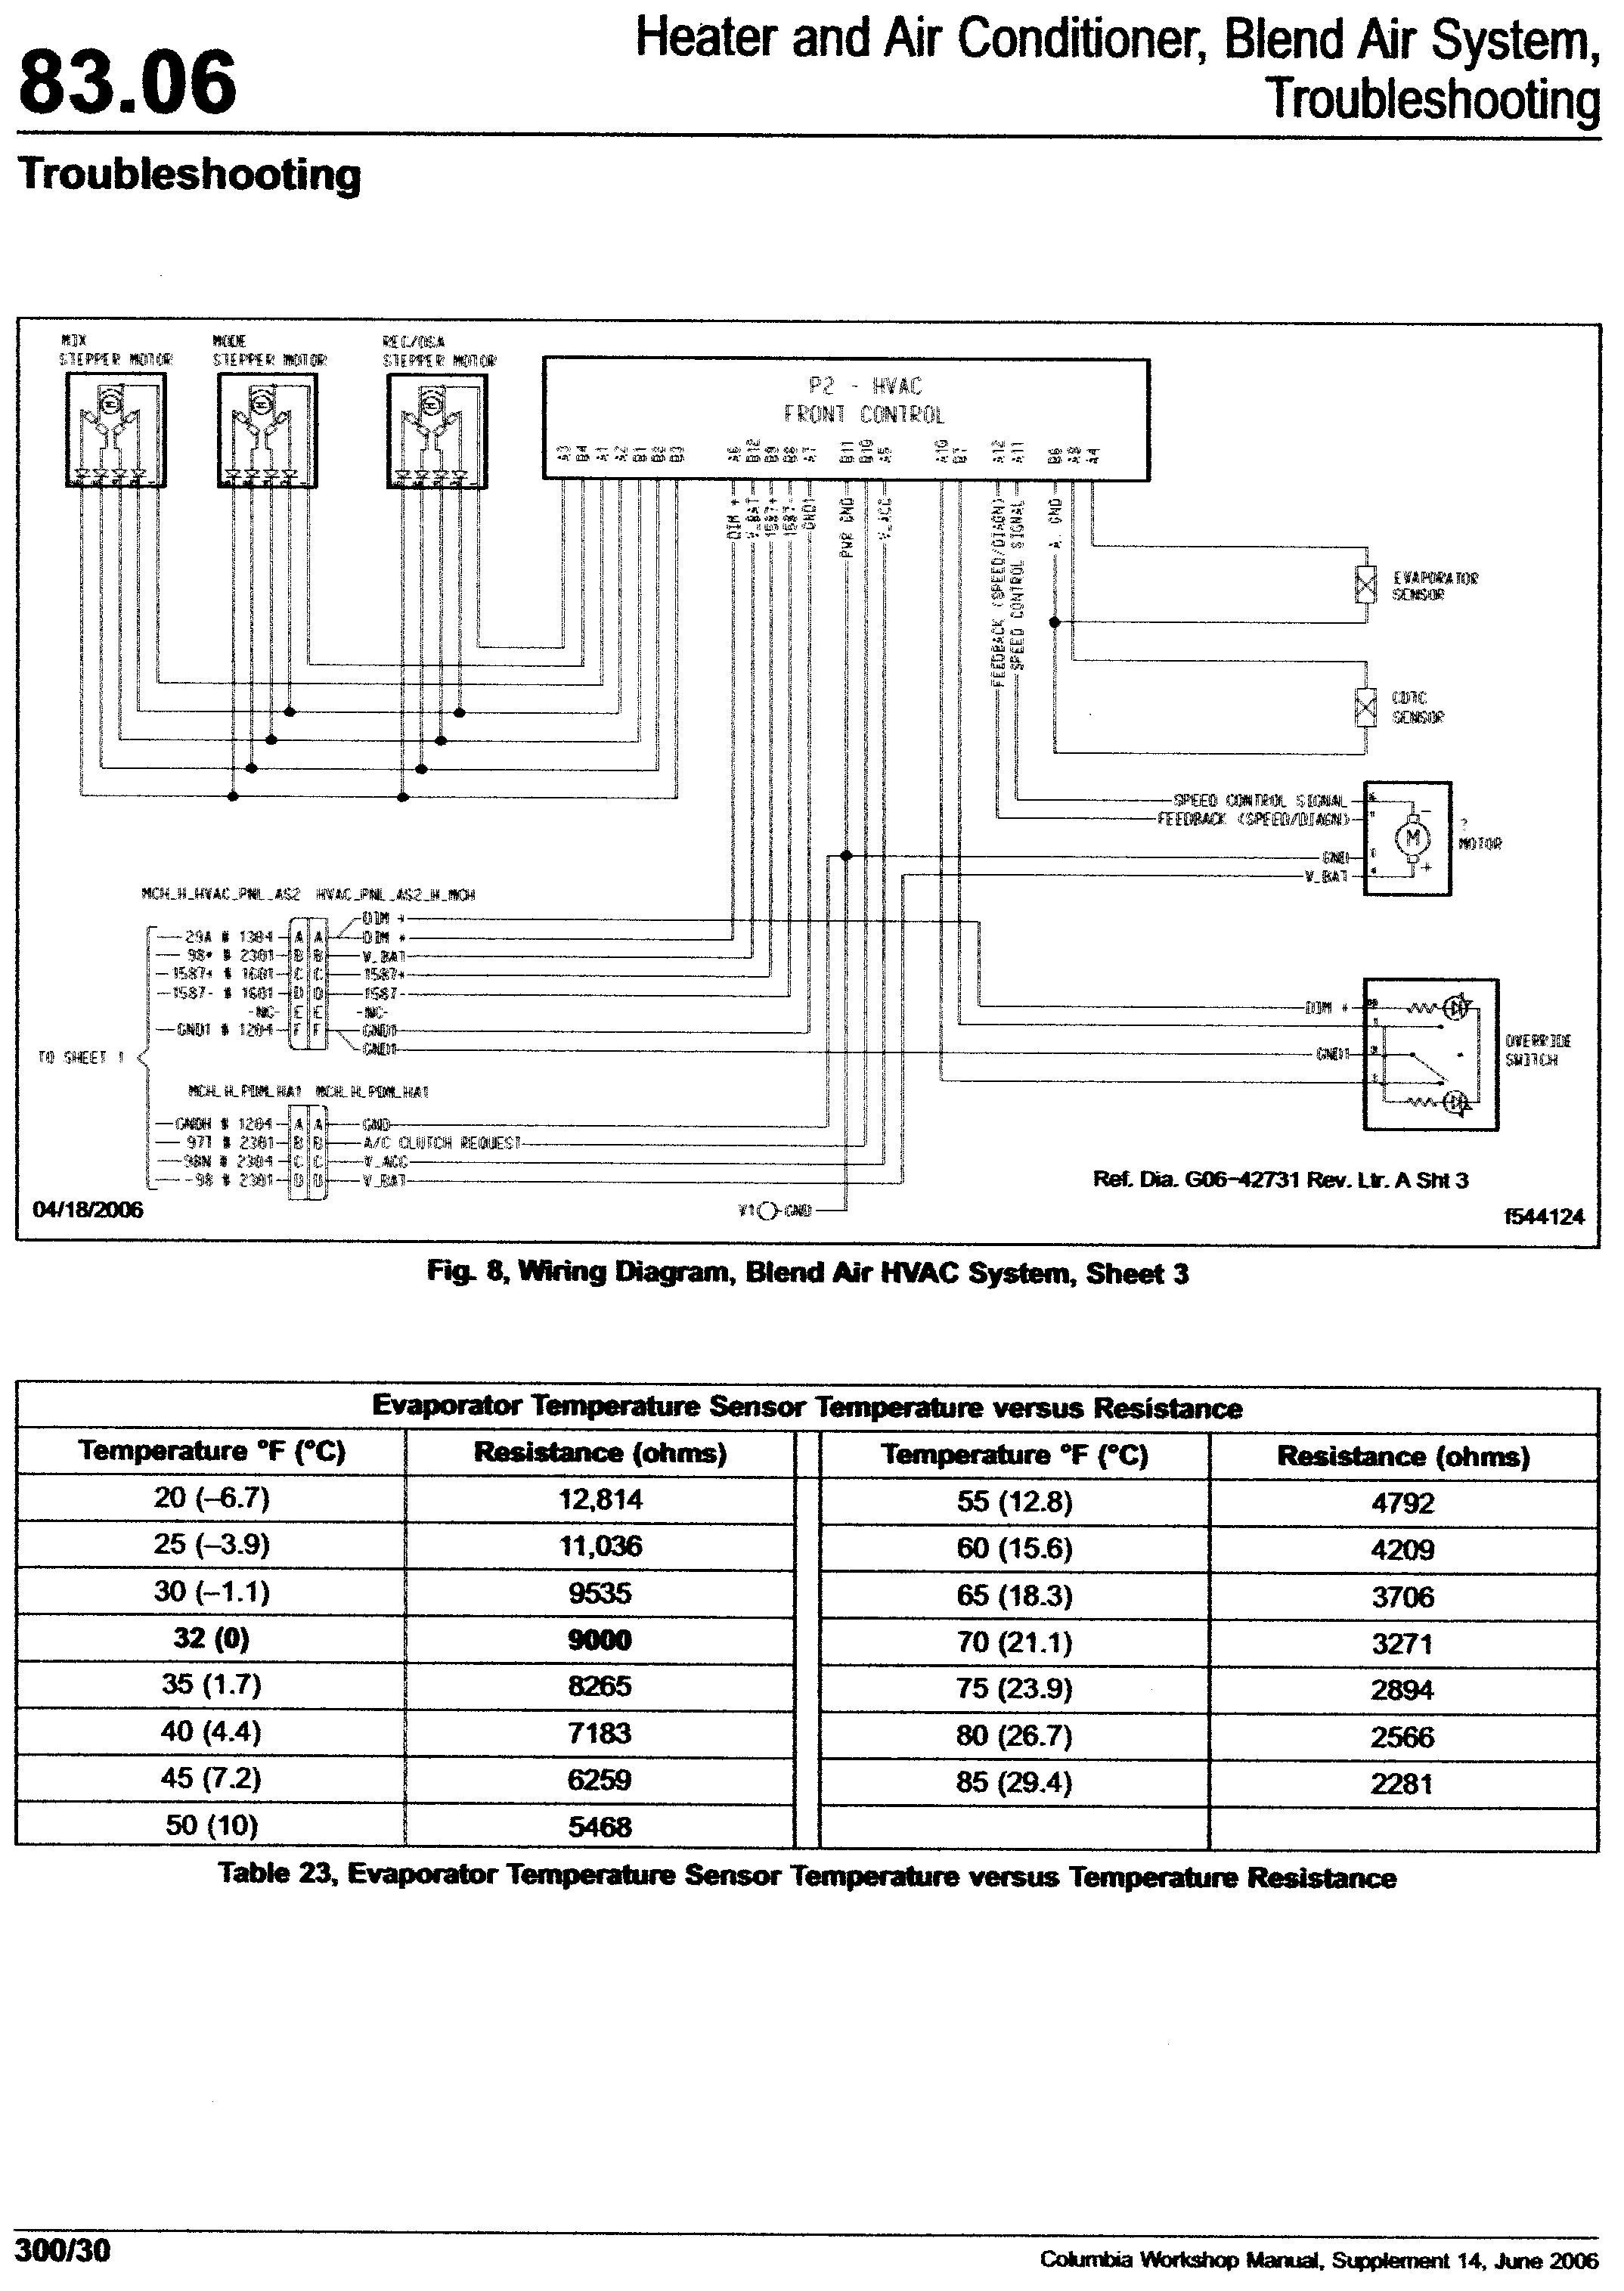 freightliner cascadia ac diagram auto wiring diagram today u2022 rh bigrecharge co 2013 freightliner radio wiring diagram freightliner columbia radio wiring diagram